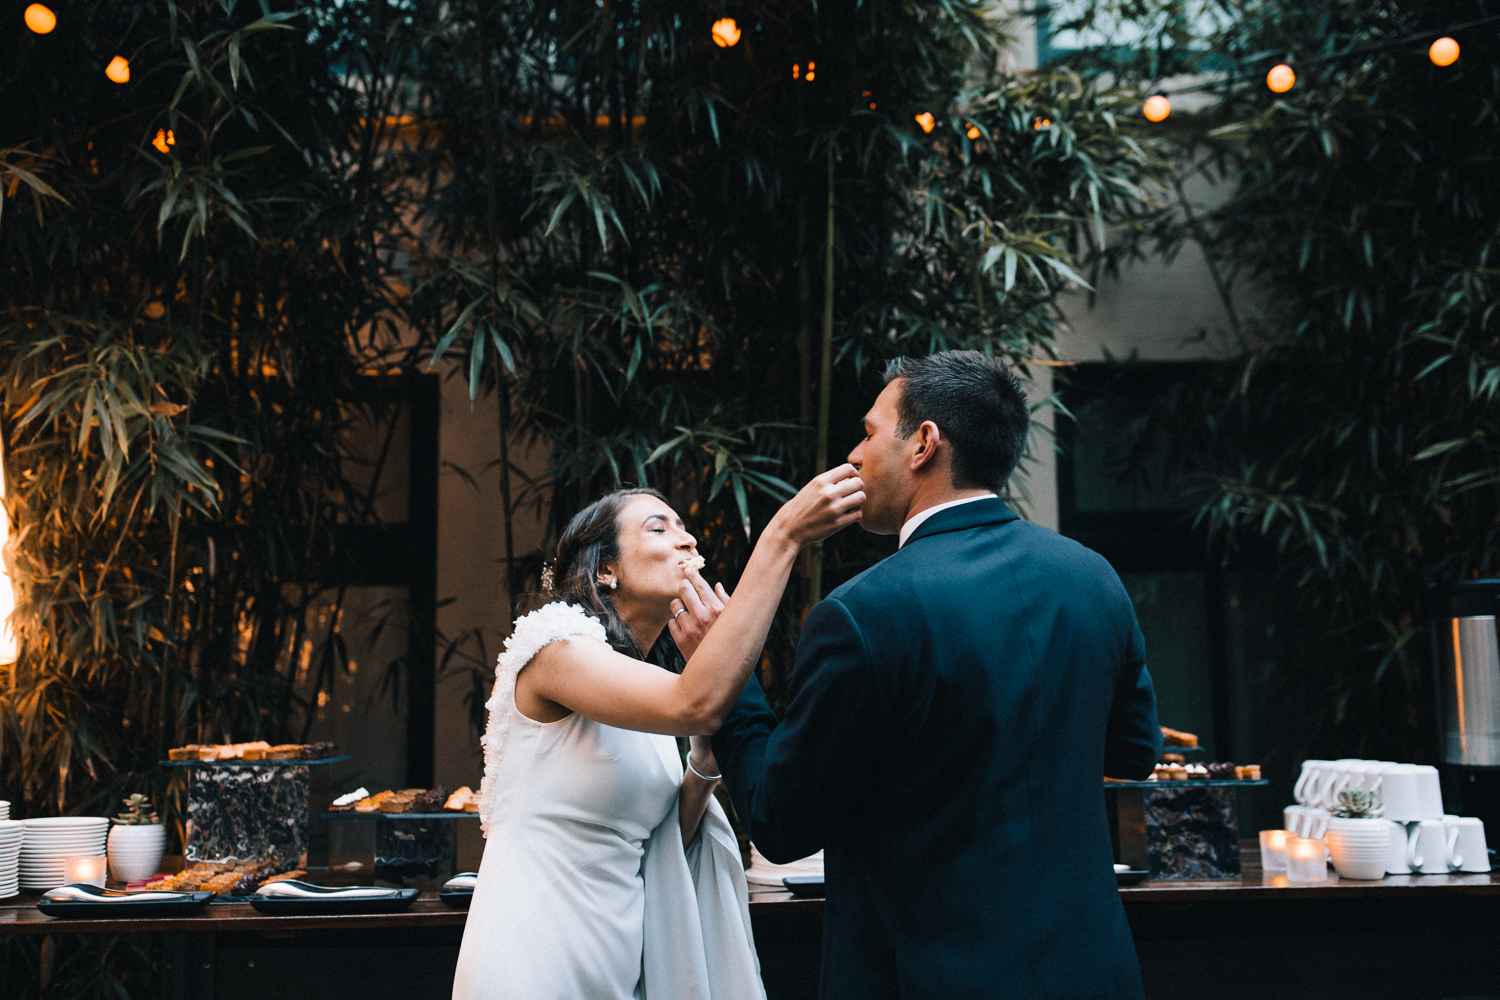 2019.06.01 Ana + Richard SF Wedding Blog Photos -1262.jpg